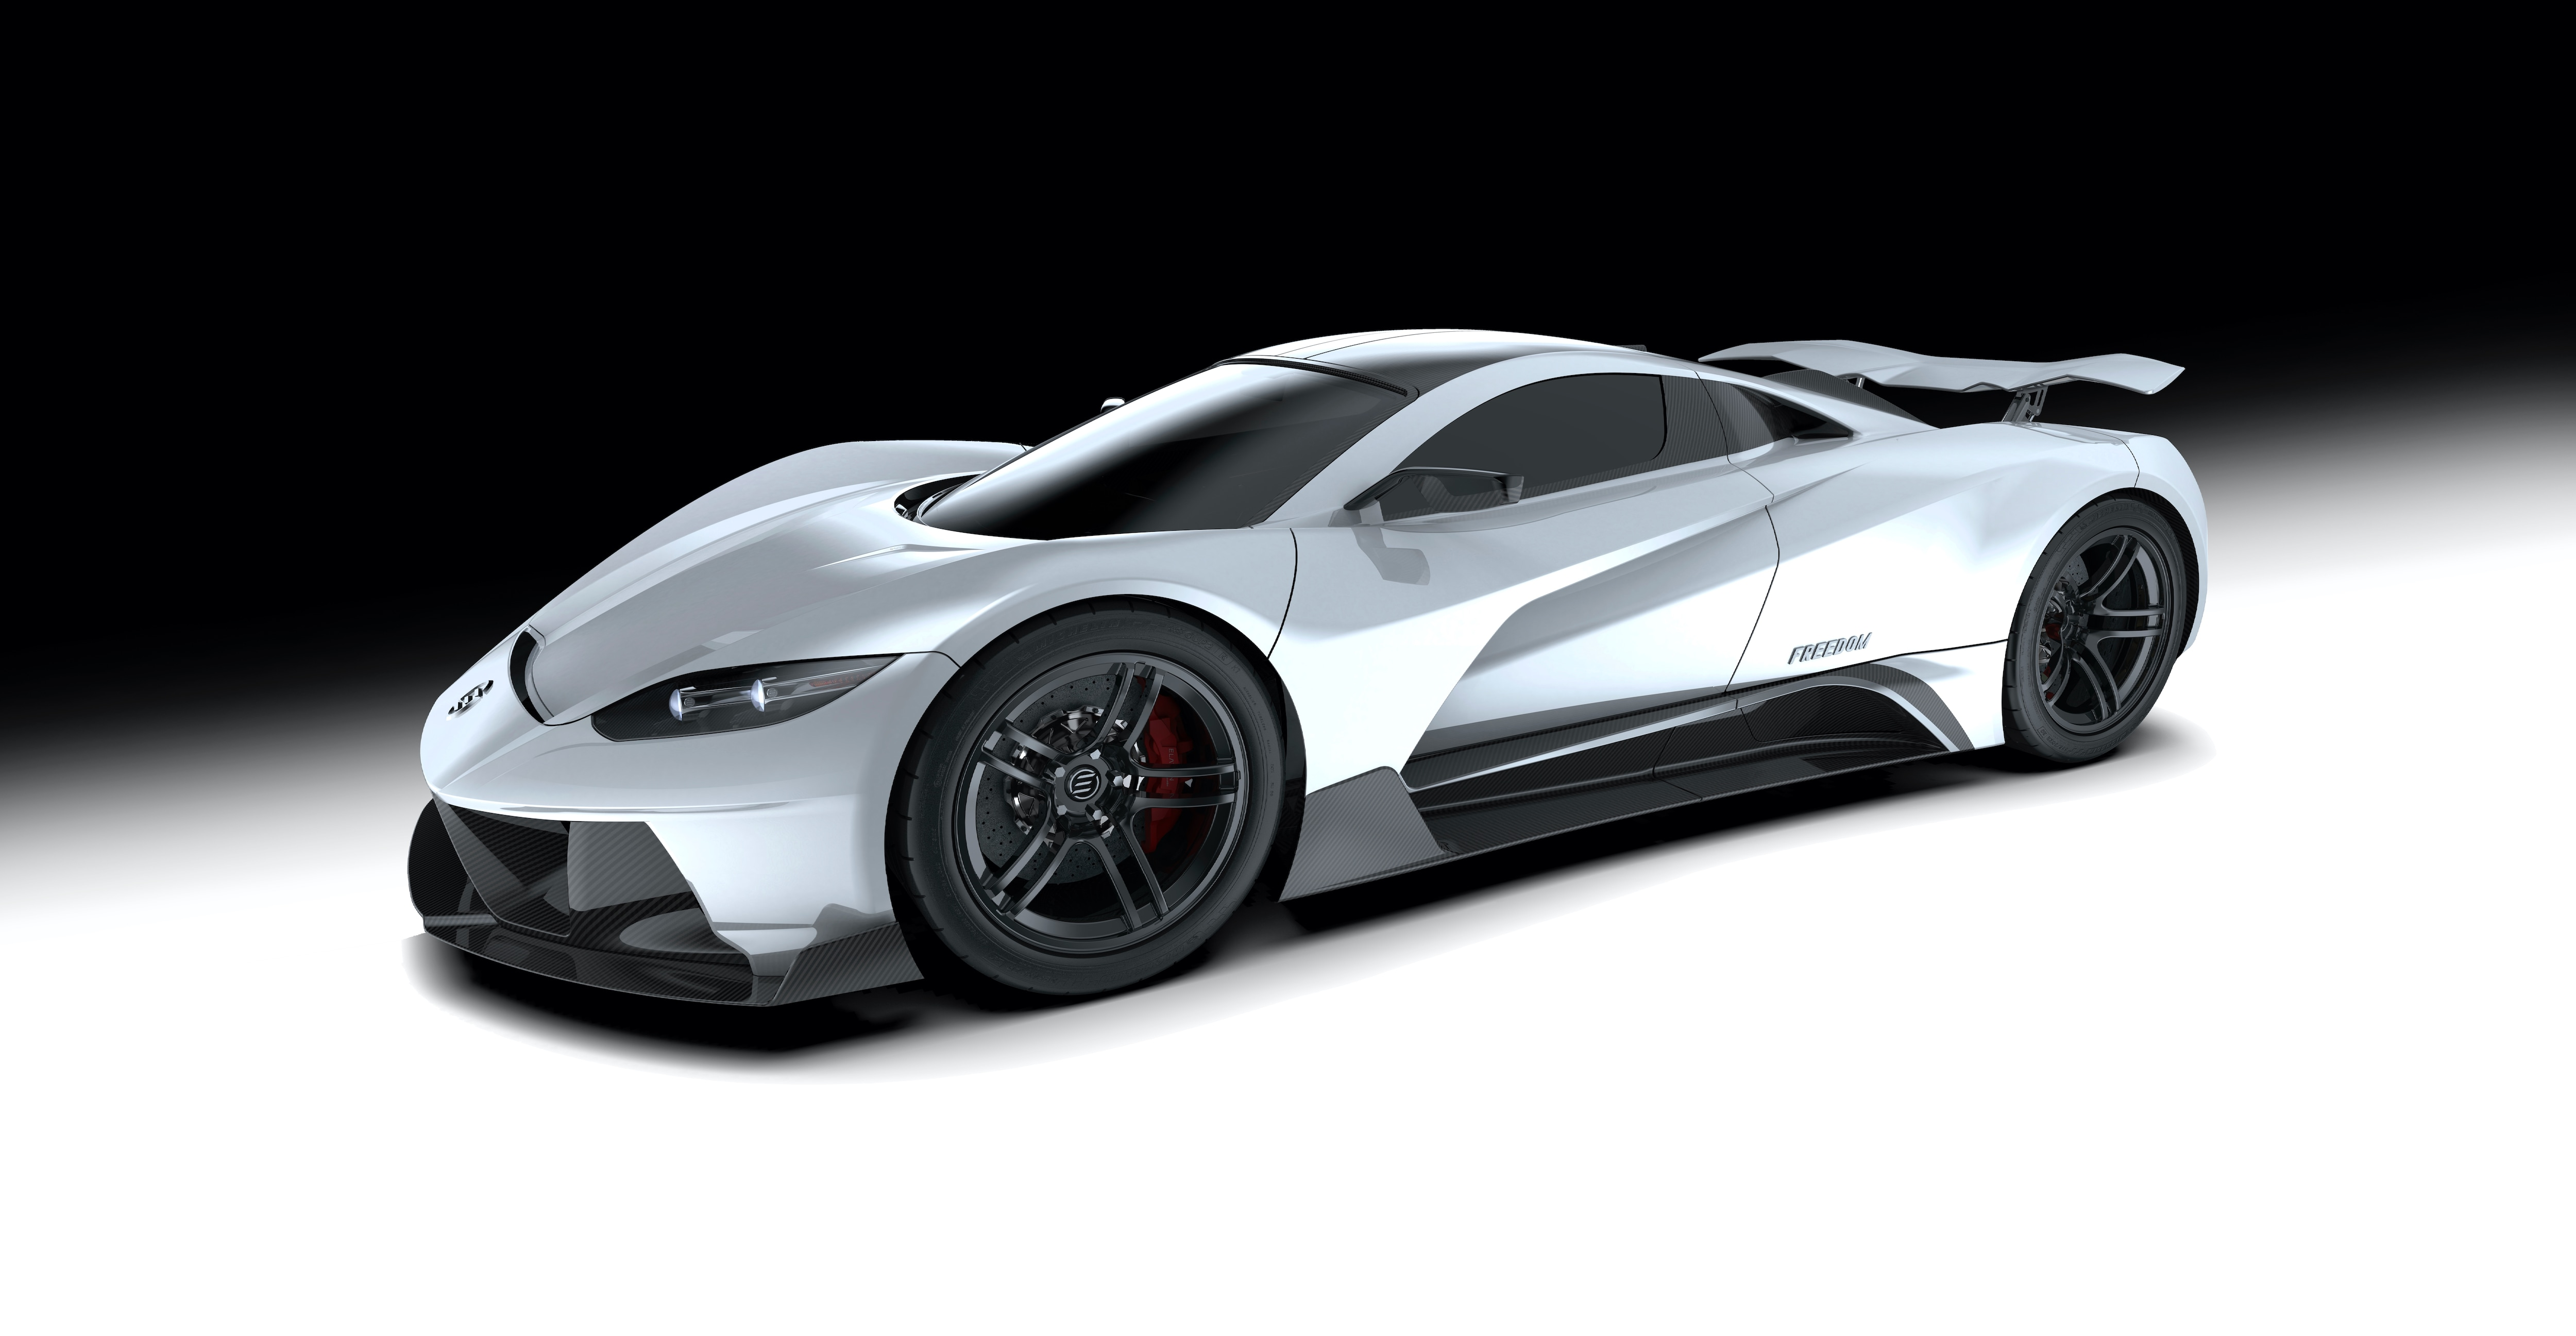 Freedom claims to touch 100 kmph from standstill in an outrageous 1.8 seconds which is largely made possible by a carbon fiber monocoque chassis which has three electric motors for a total output of a ginormous 1,427 hp. An option of a fourth motor takes this combined output to an even more stunning 1,903 hp.